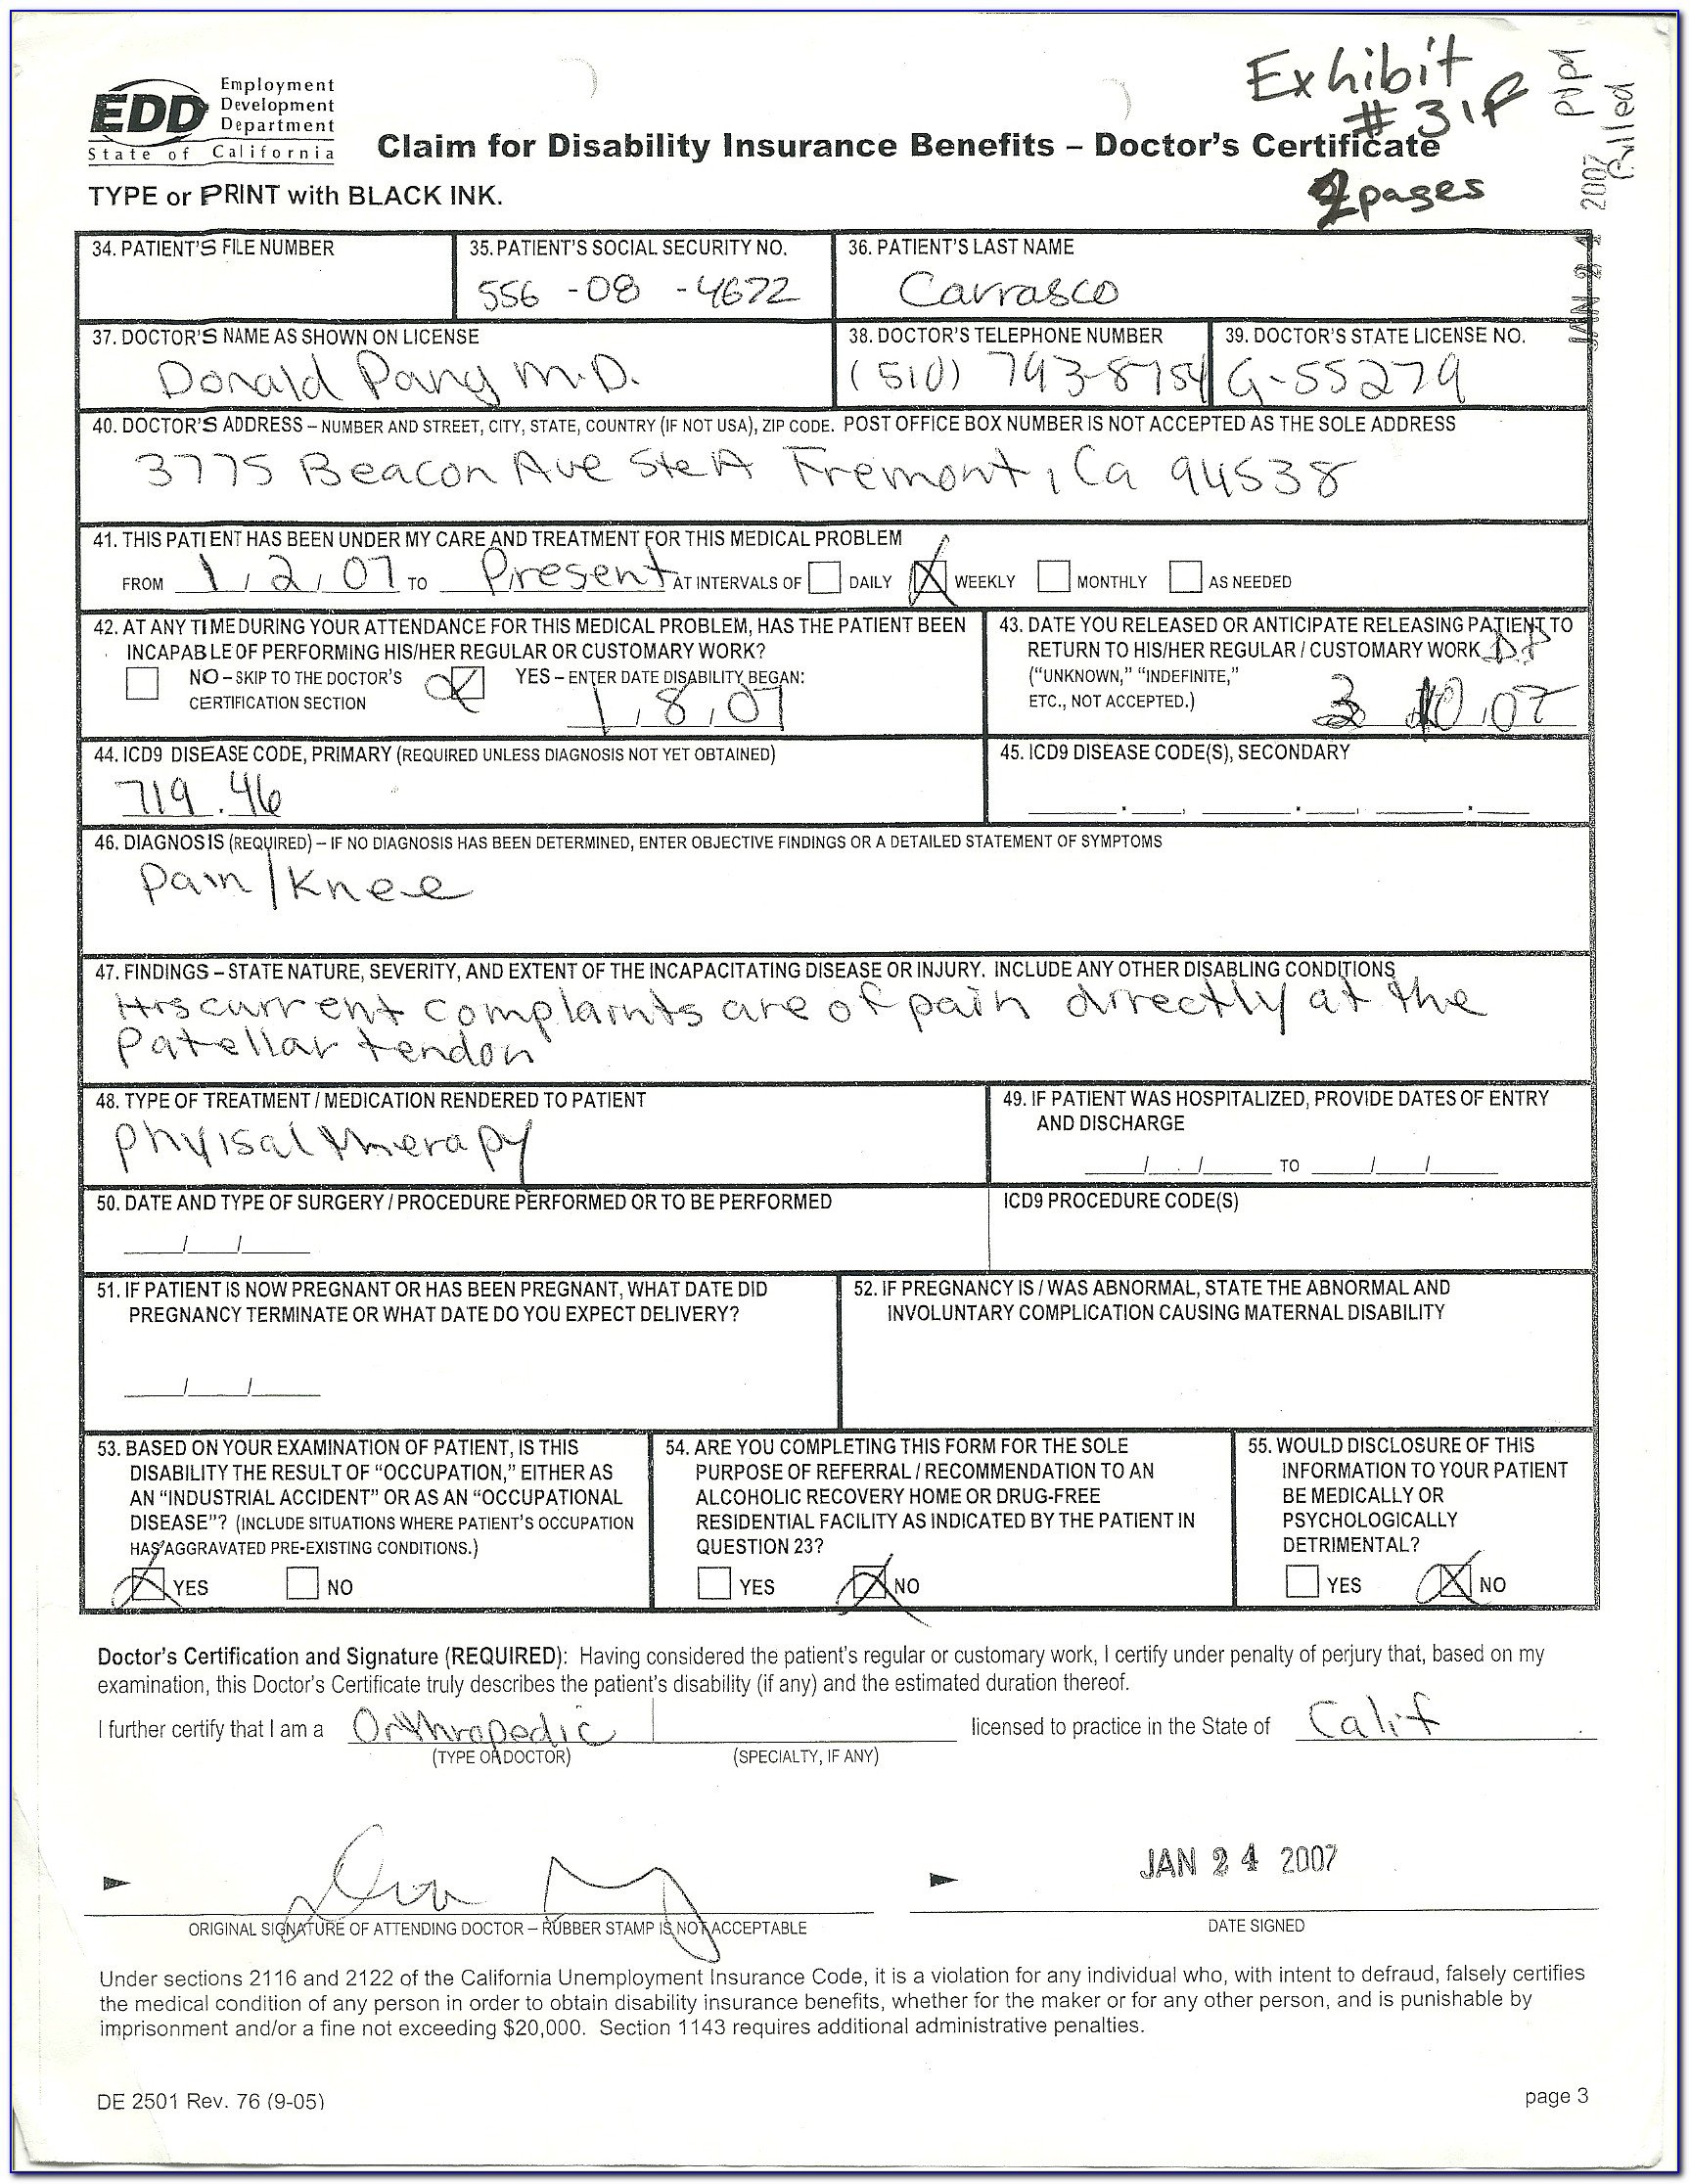 Disability Tax Form For Doctor To Fill Out